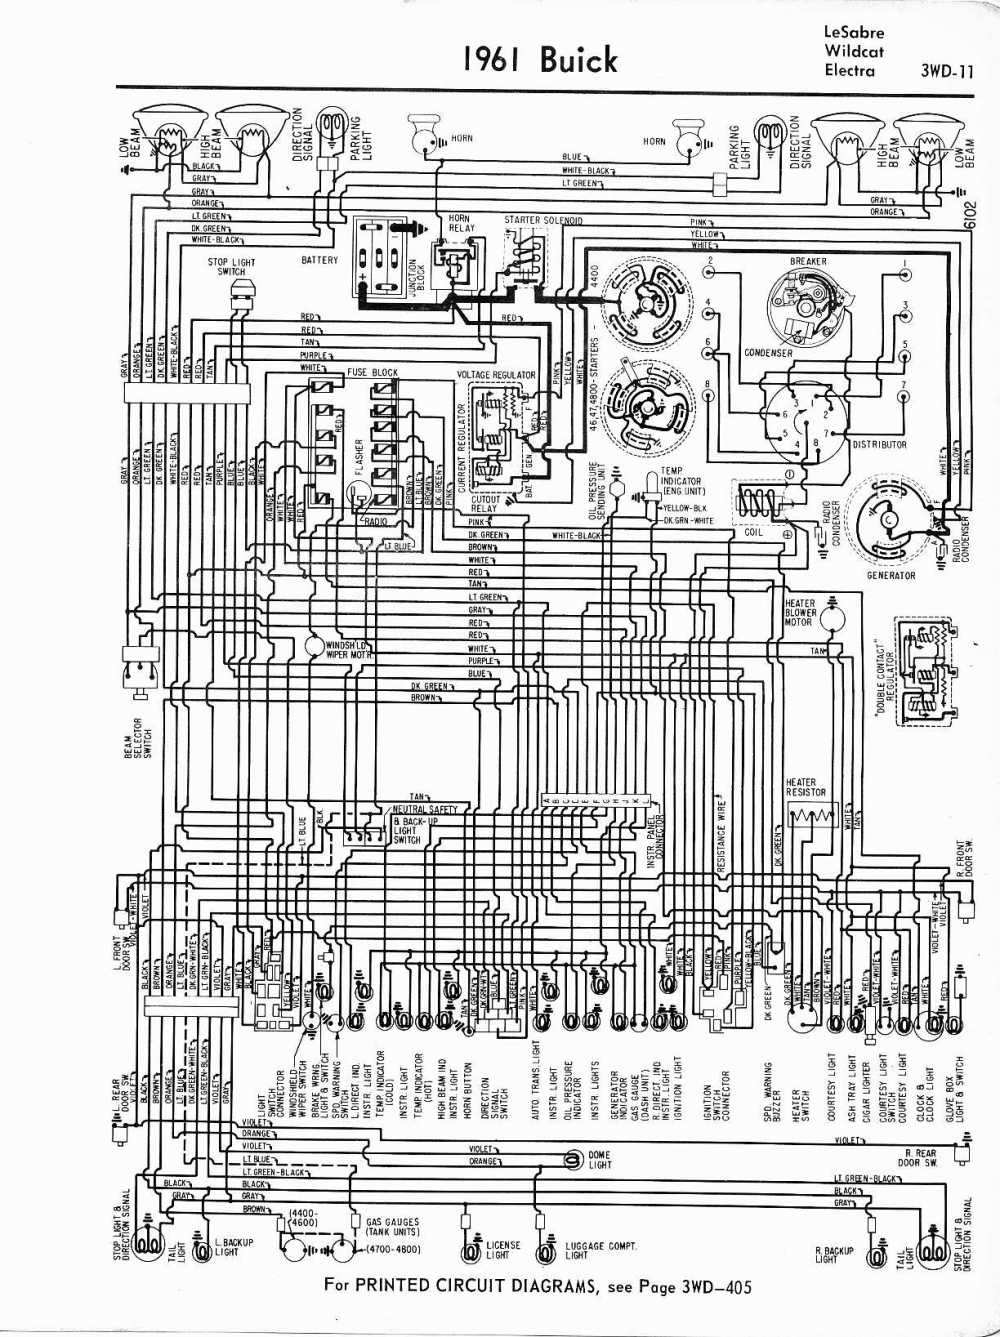 medium resolution of riviera car wiring diagrams free data wiring diagram 1972 buick wiring diagrams automotive